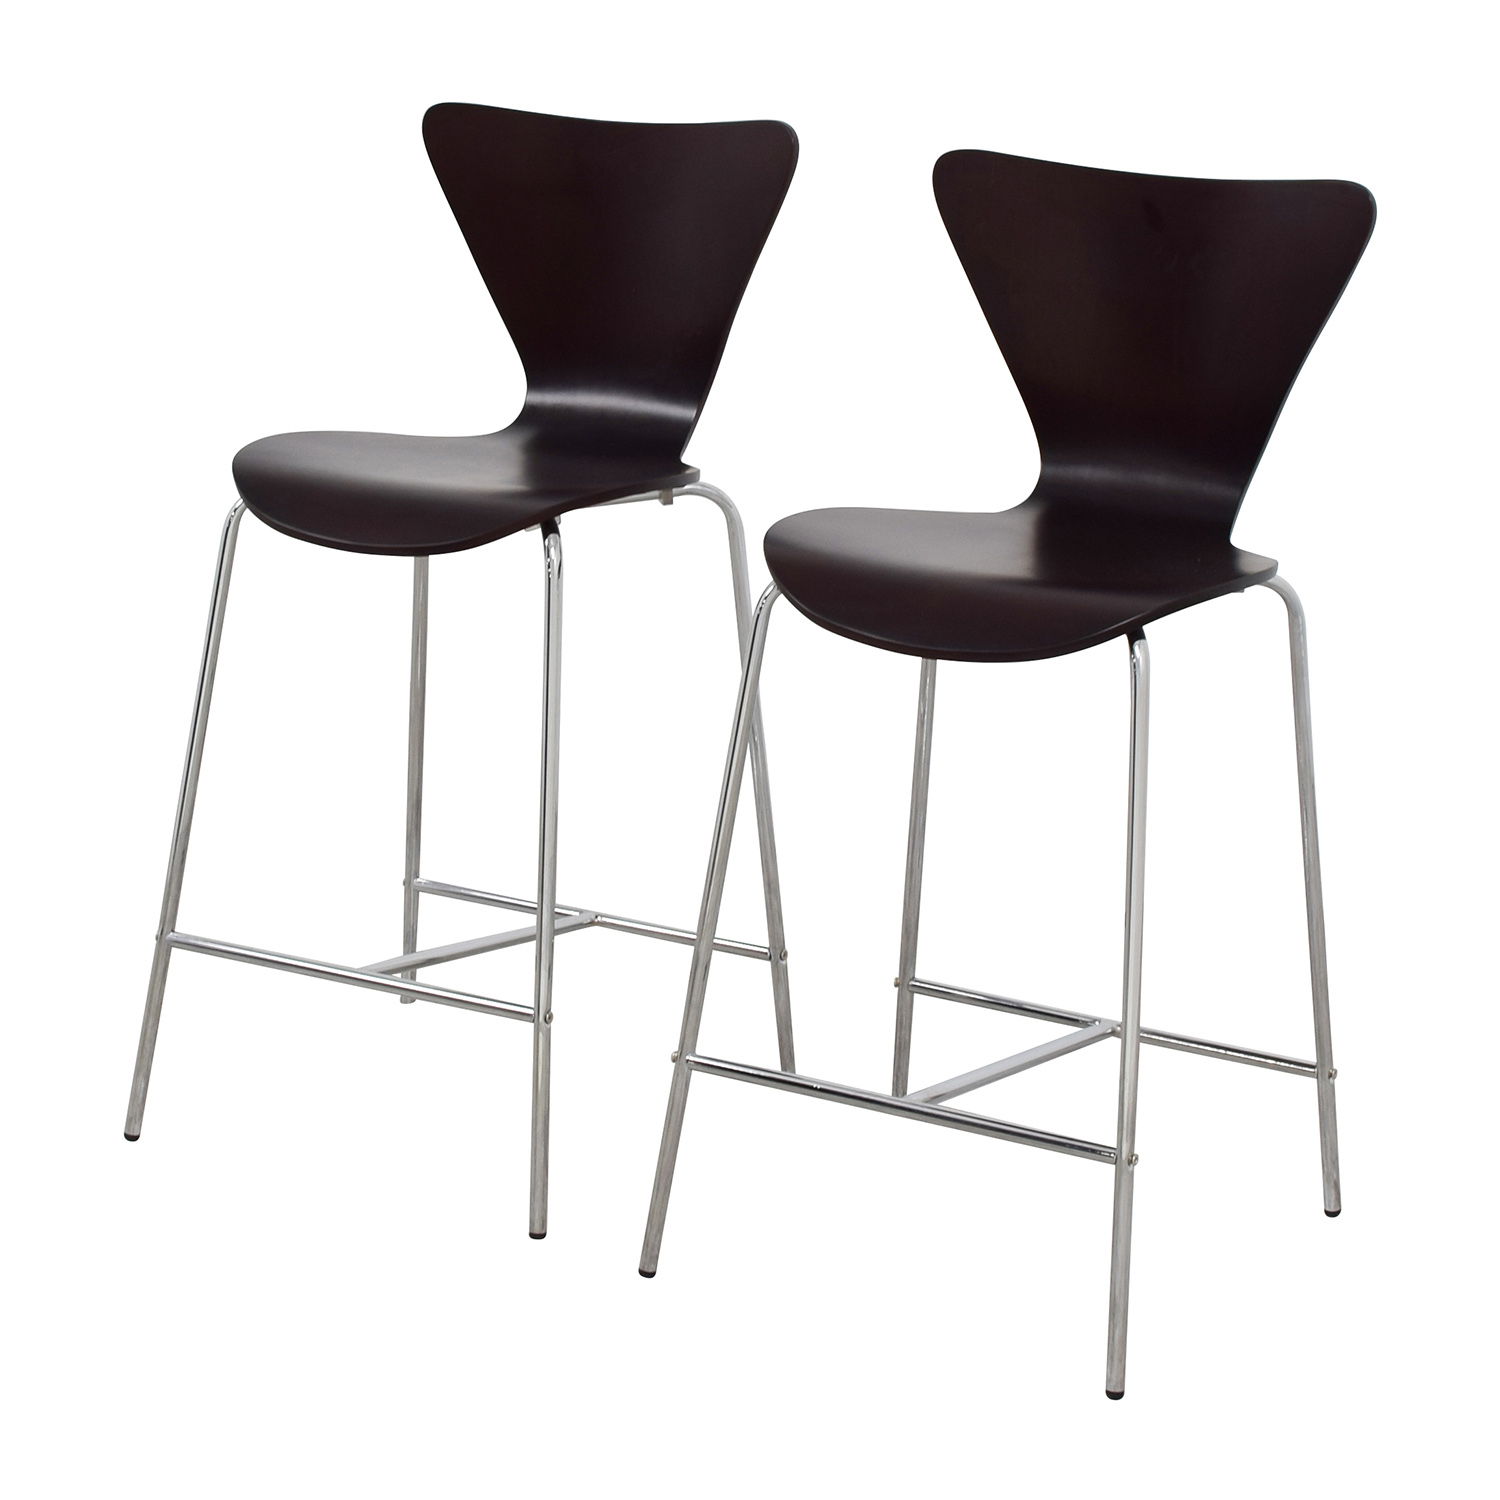 ... InMod InMod Tendy C Counter Chair Wenge For Sale ...